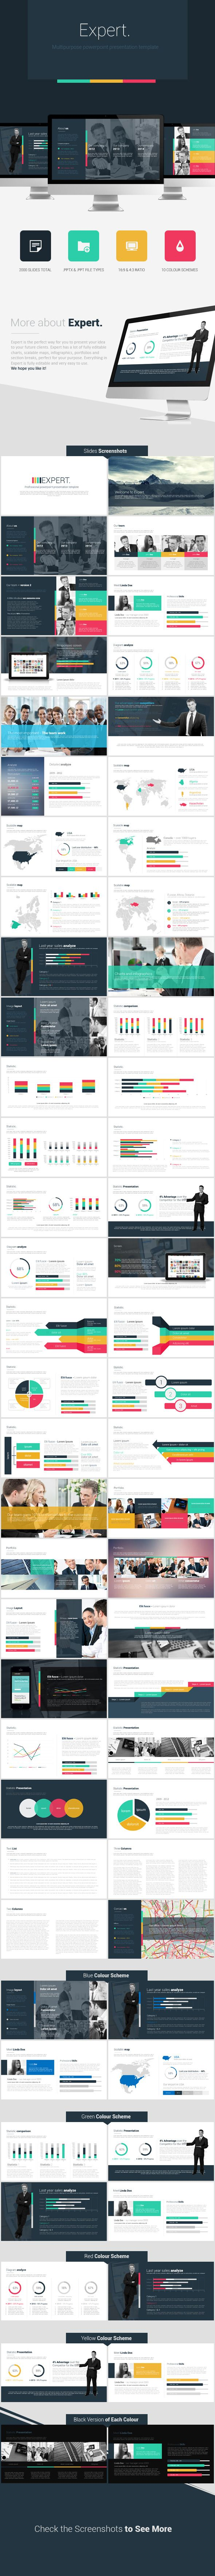 Expert Powerpoint Presentation Template (Powerpoint Templates) thepreviewofexpert